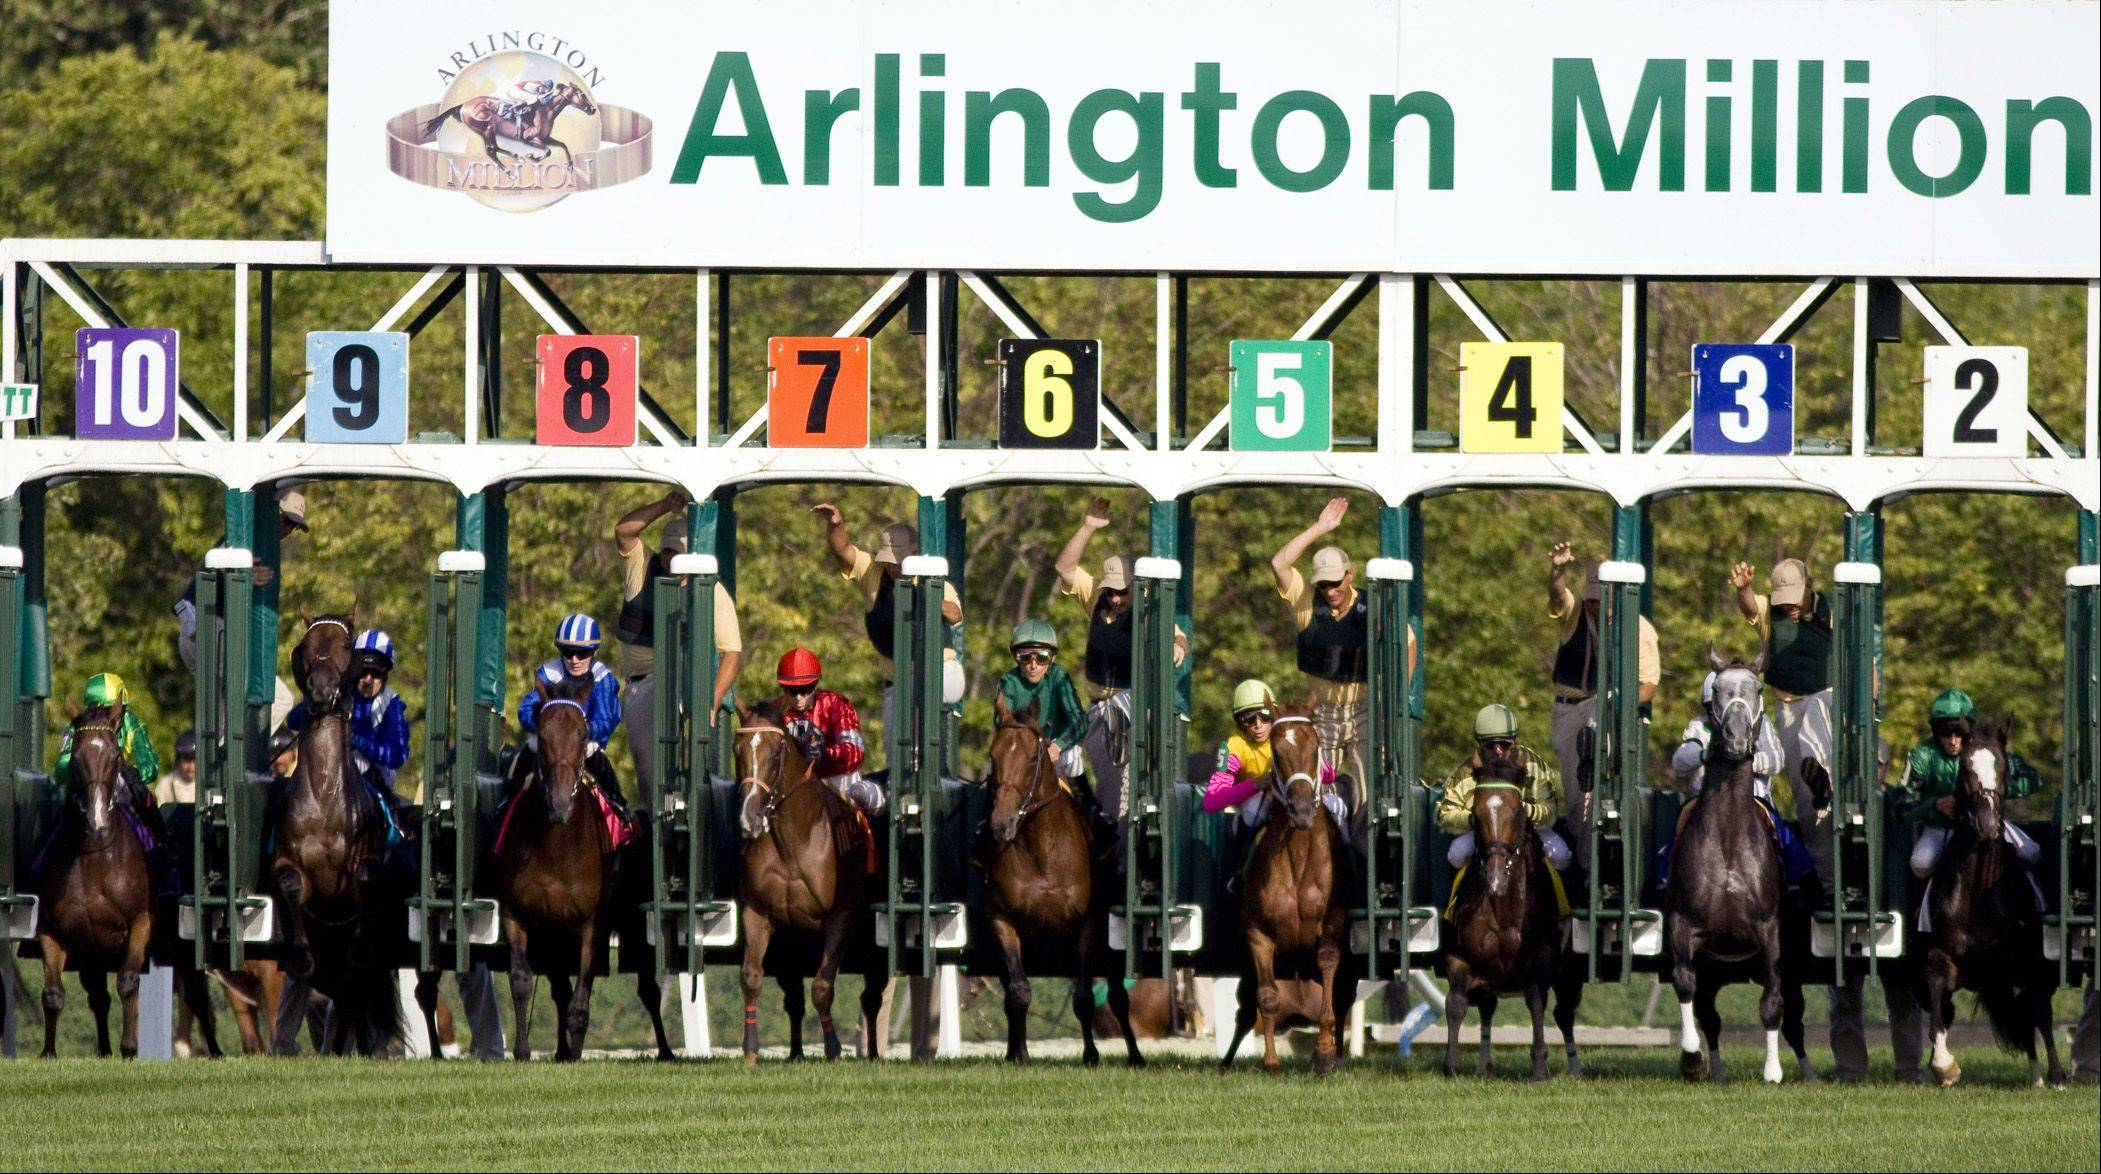 Photo courtesy of FourFootedFotos � It�s not Million Day, but it�s the next best thing when Arlington Park hosts Million Preview Day on Saturday